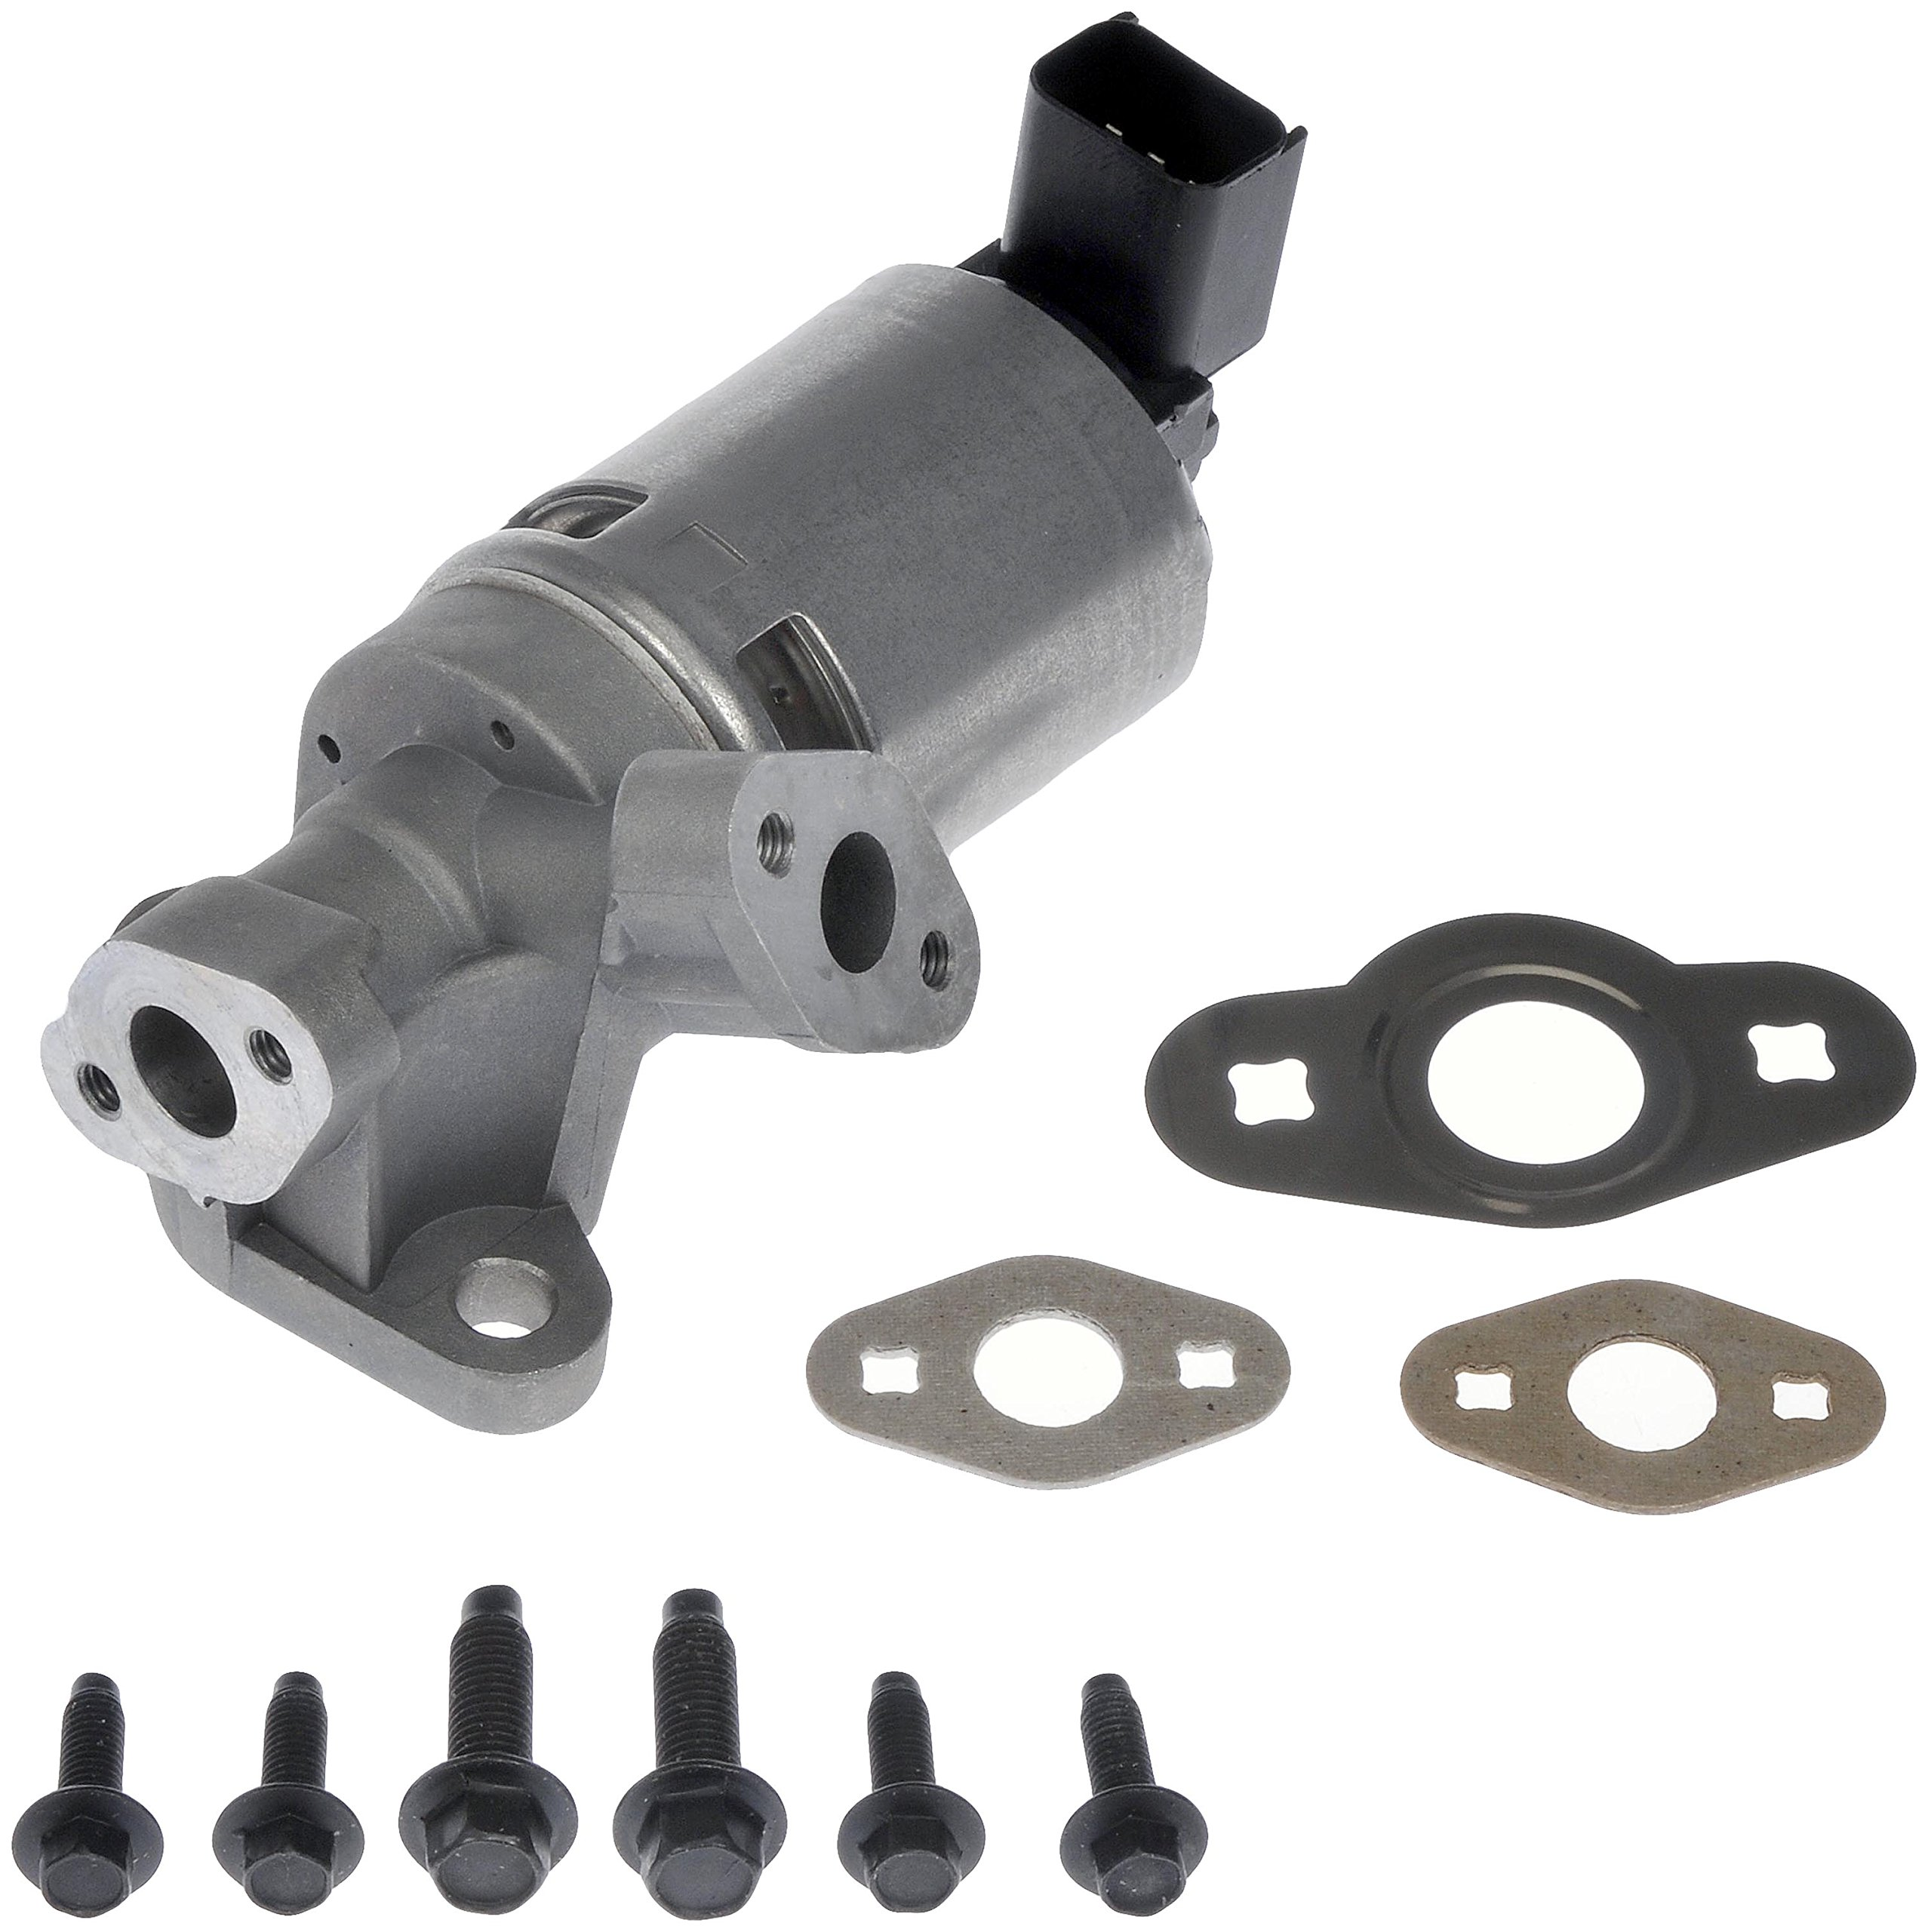 Dorman 911-234 Exhaust Gas Recirculation Valve